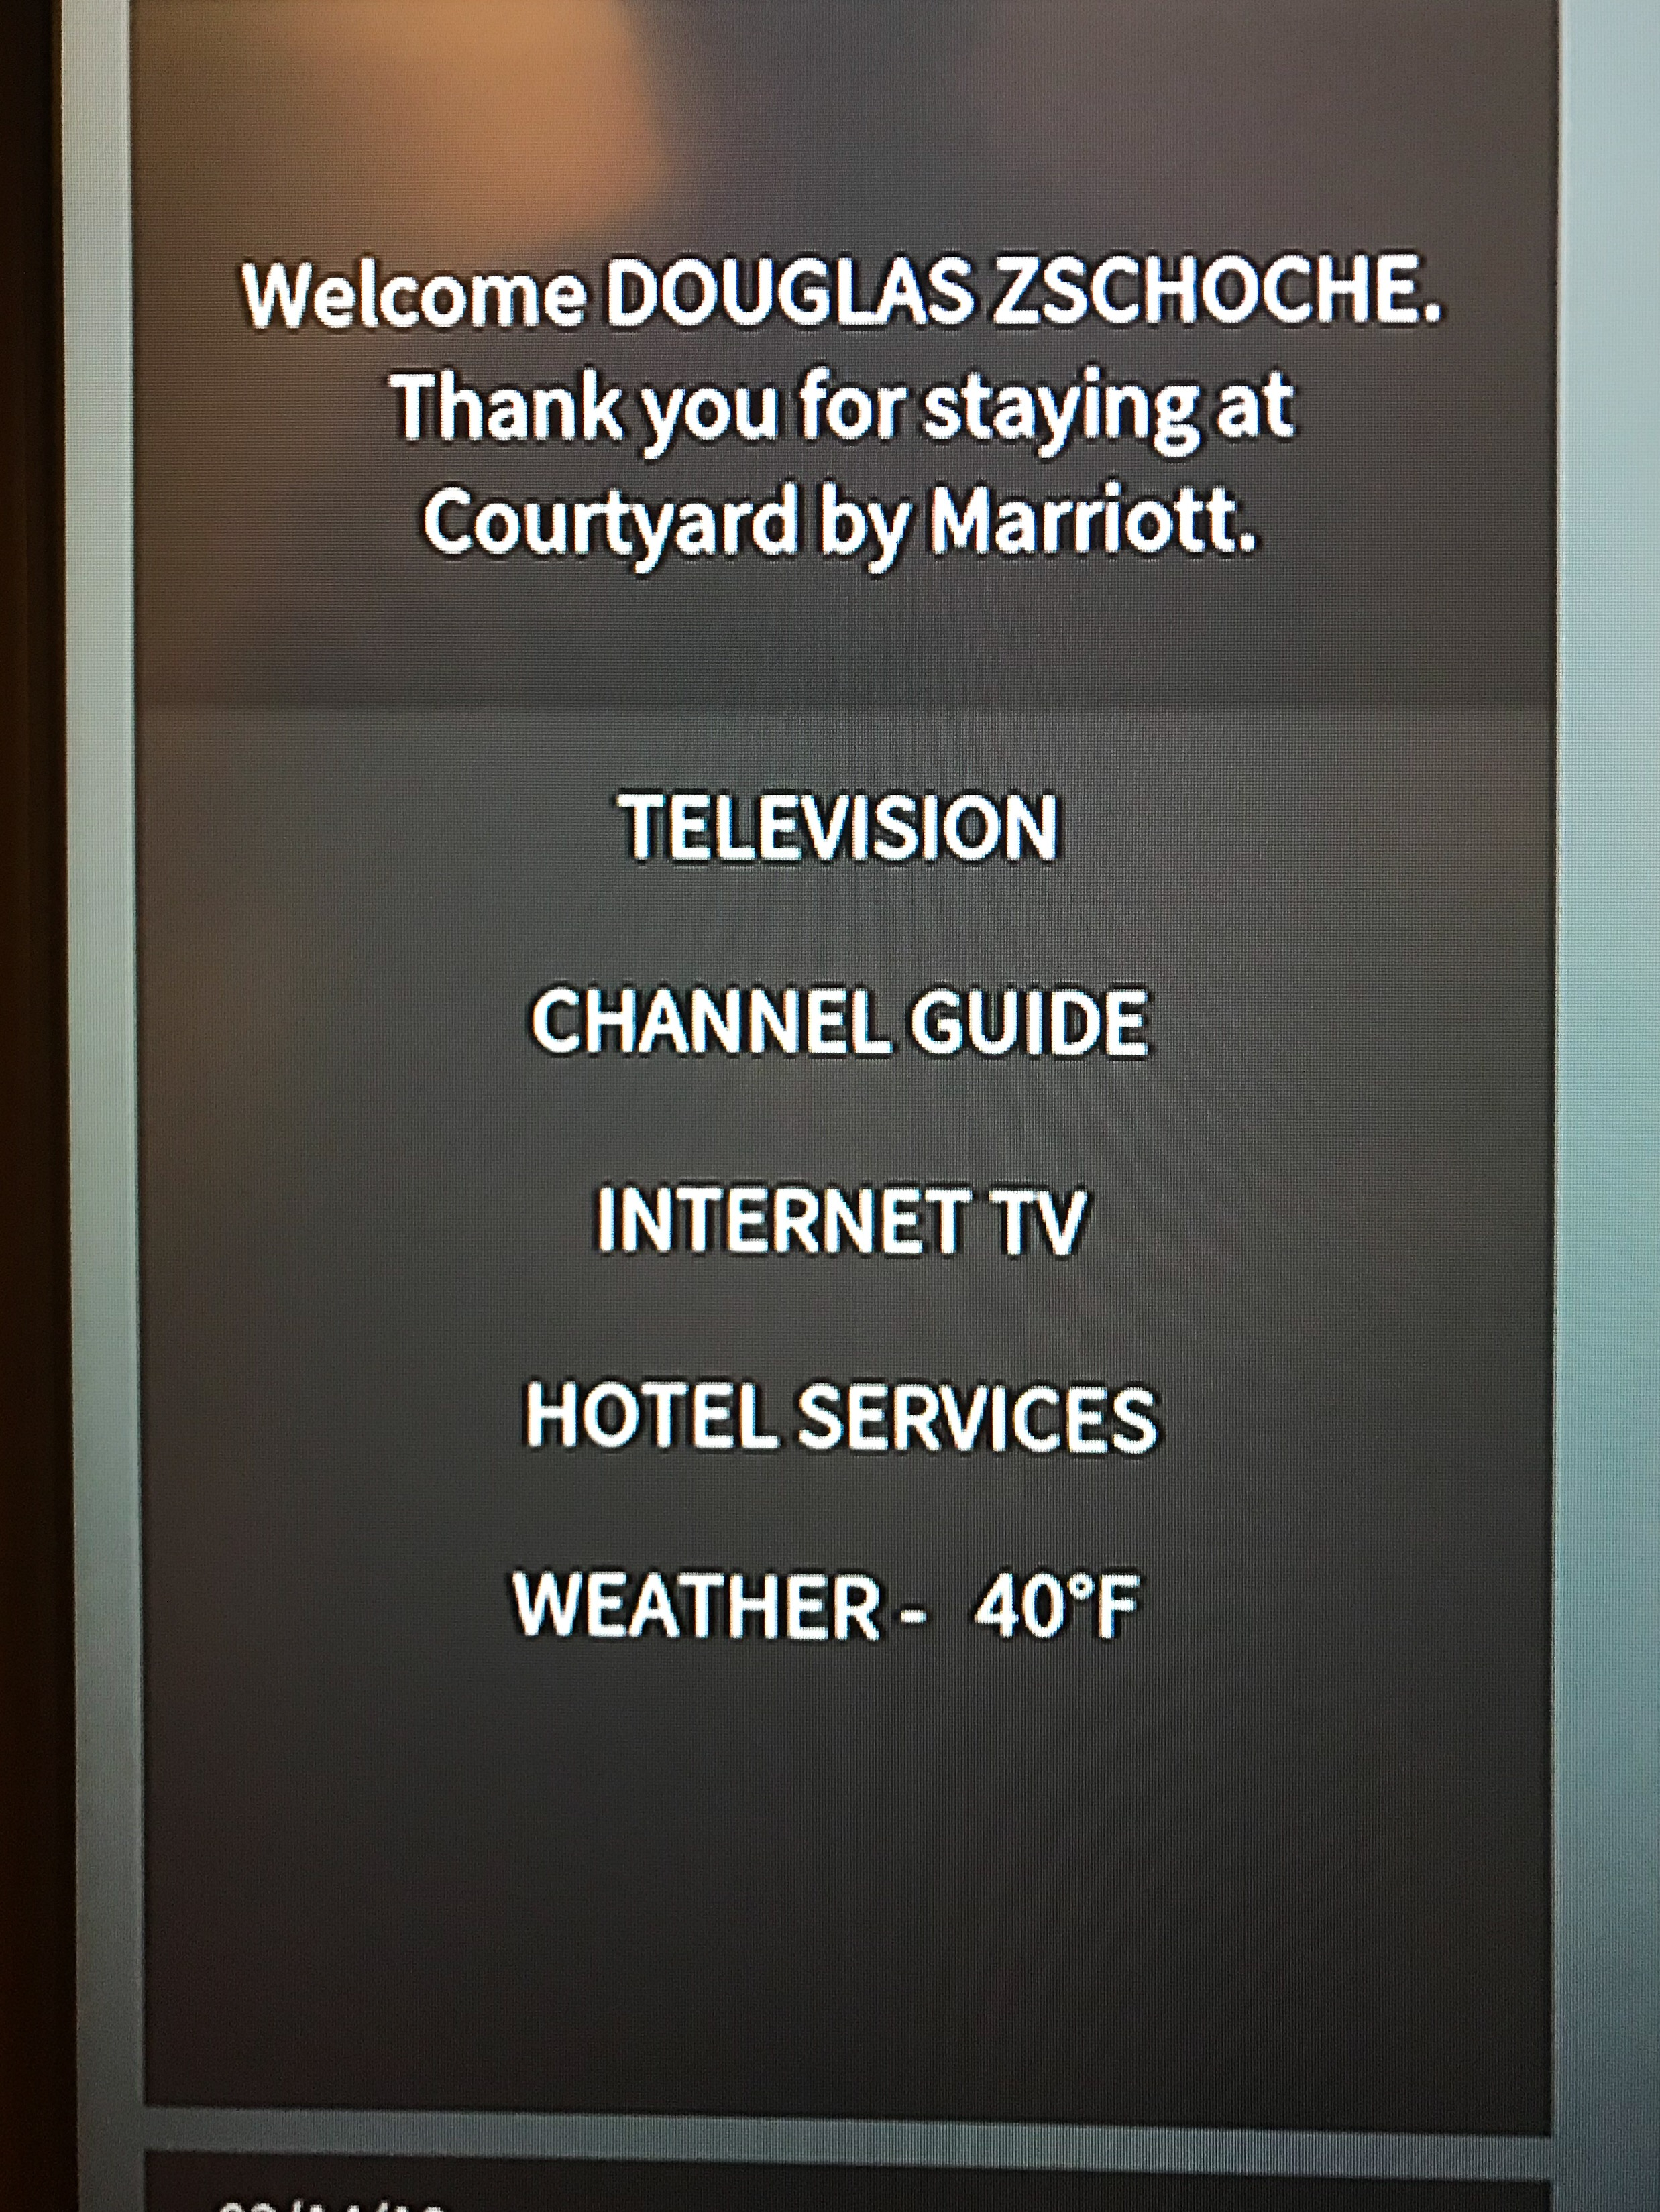 A nice welcome message on the TV.